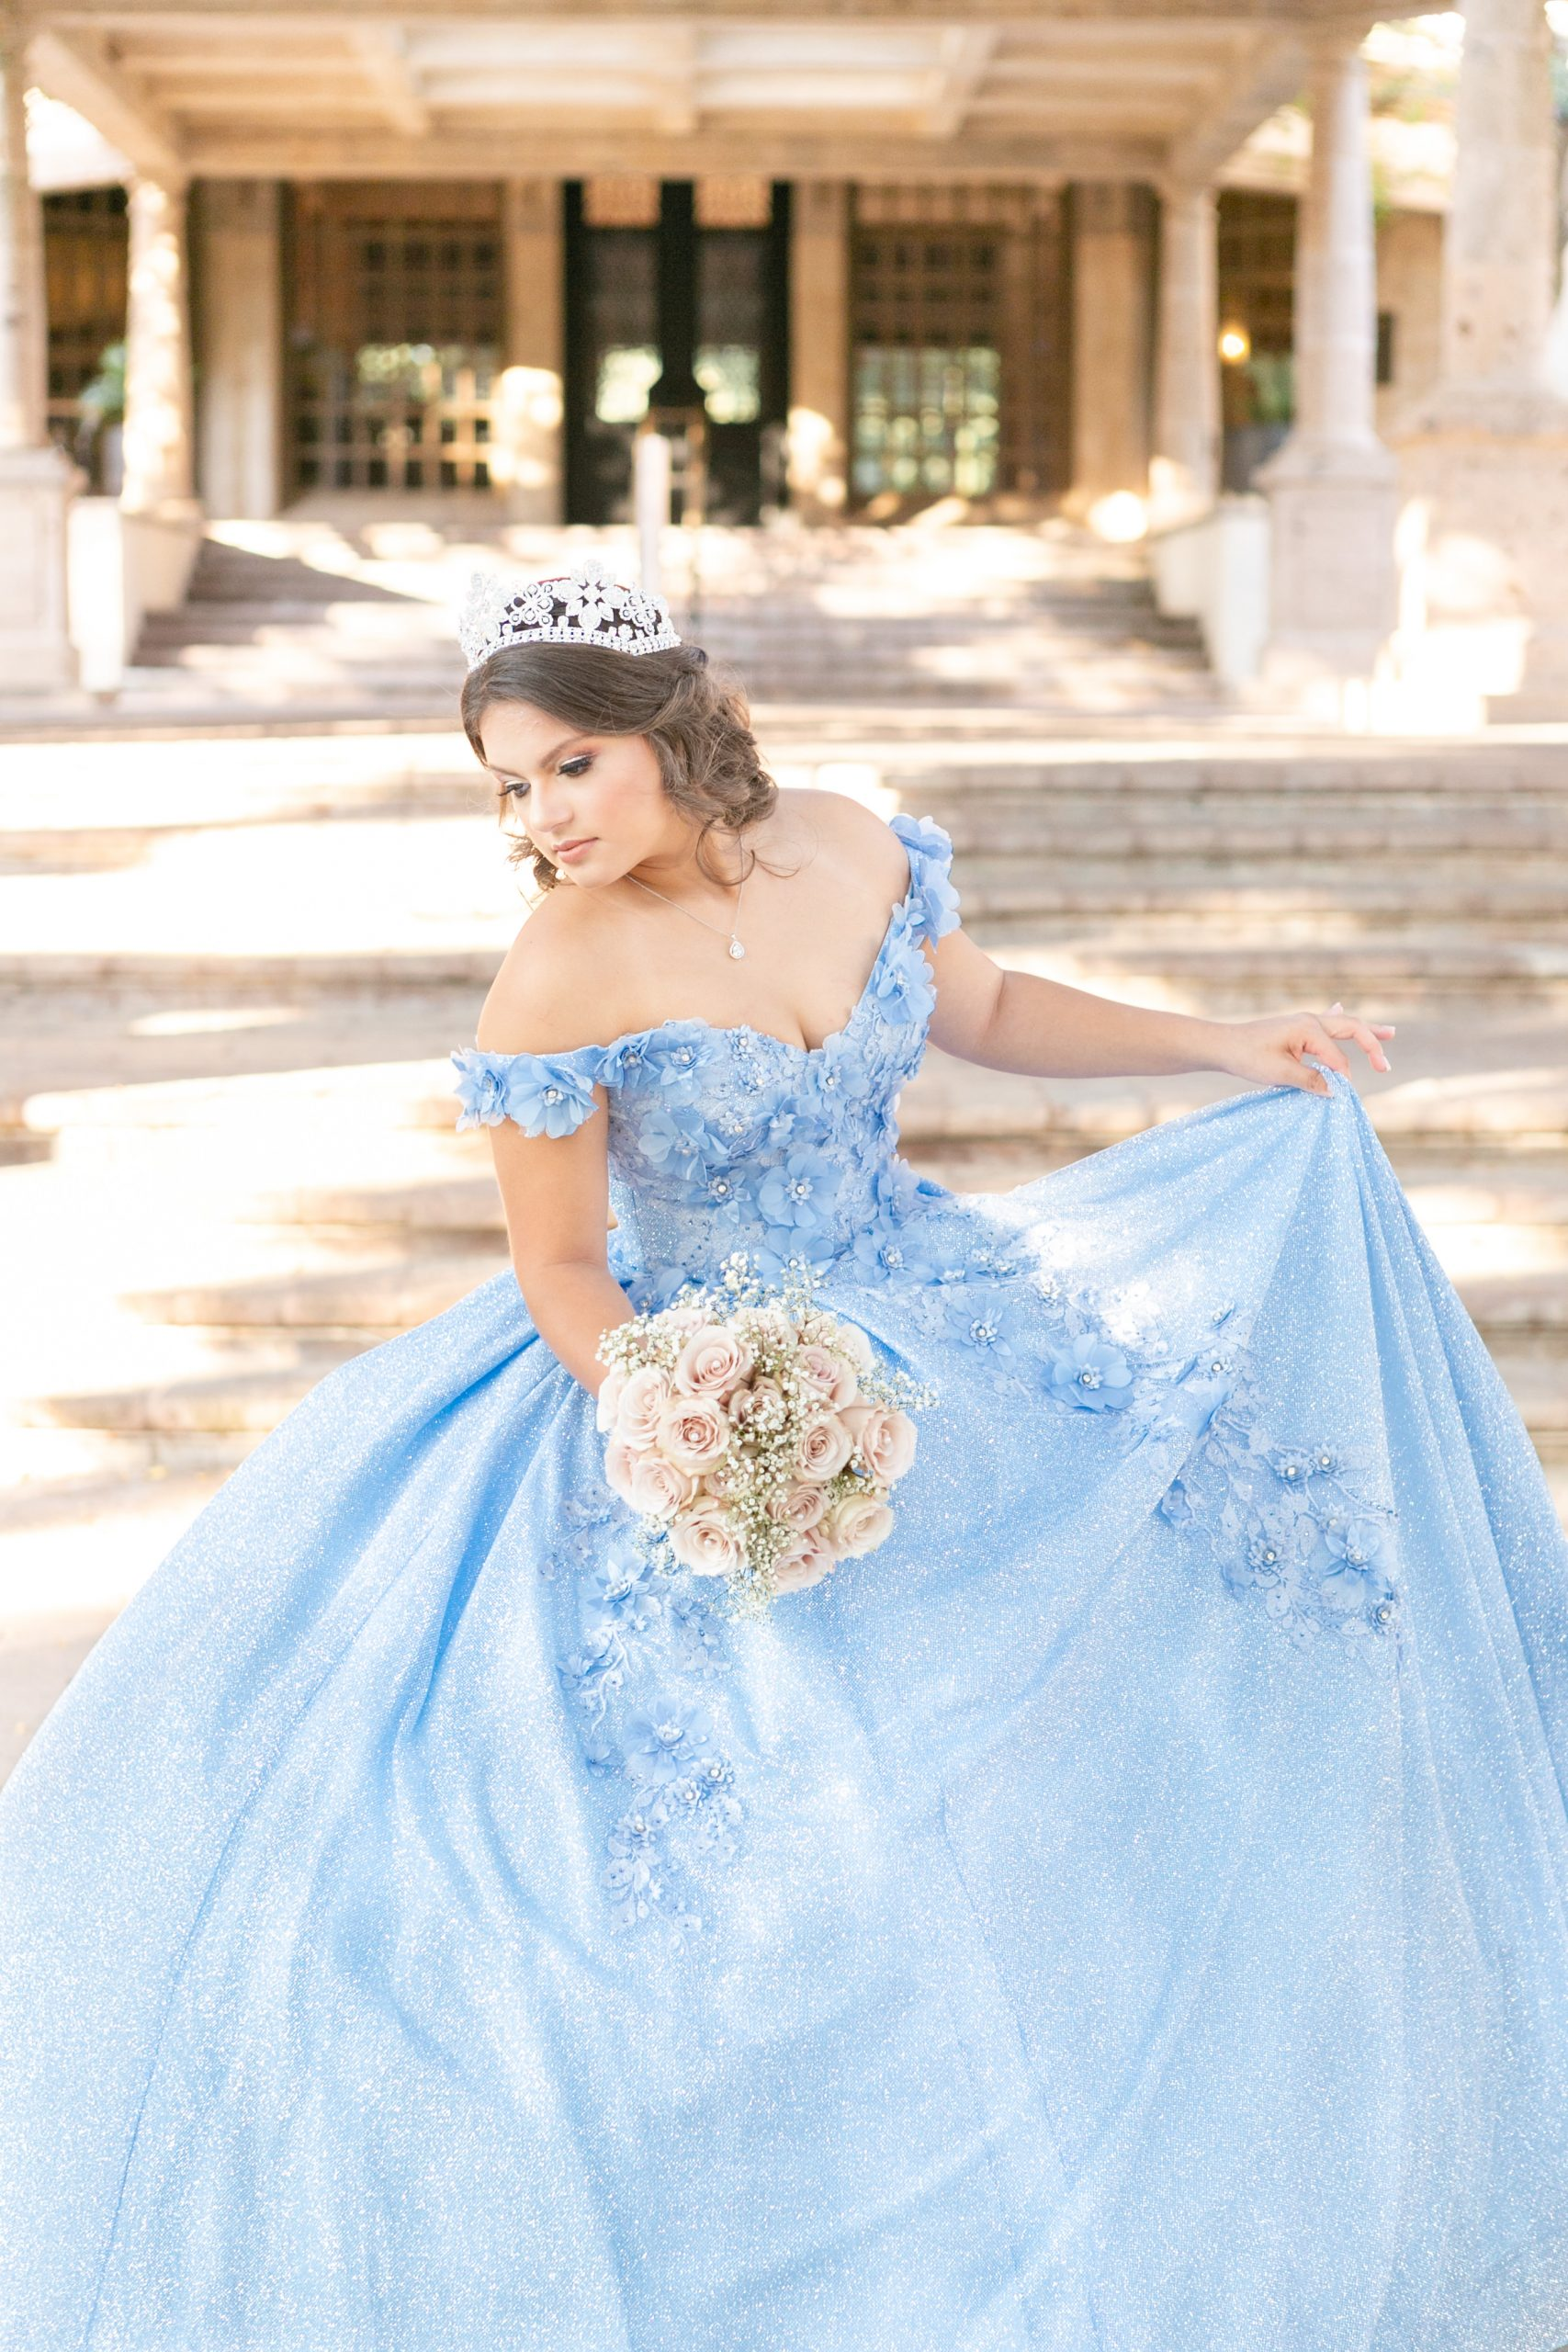 Quinceanera portrait dress by Alamo Bridal at the Dominion Country Club in San Antonio, Texas by Paty Araujo Photography